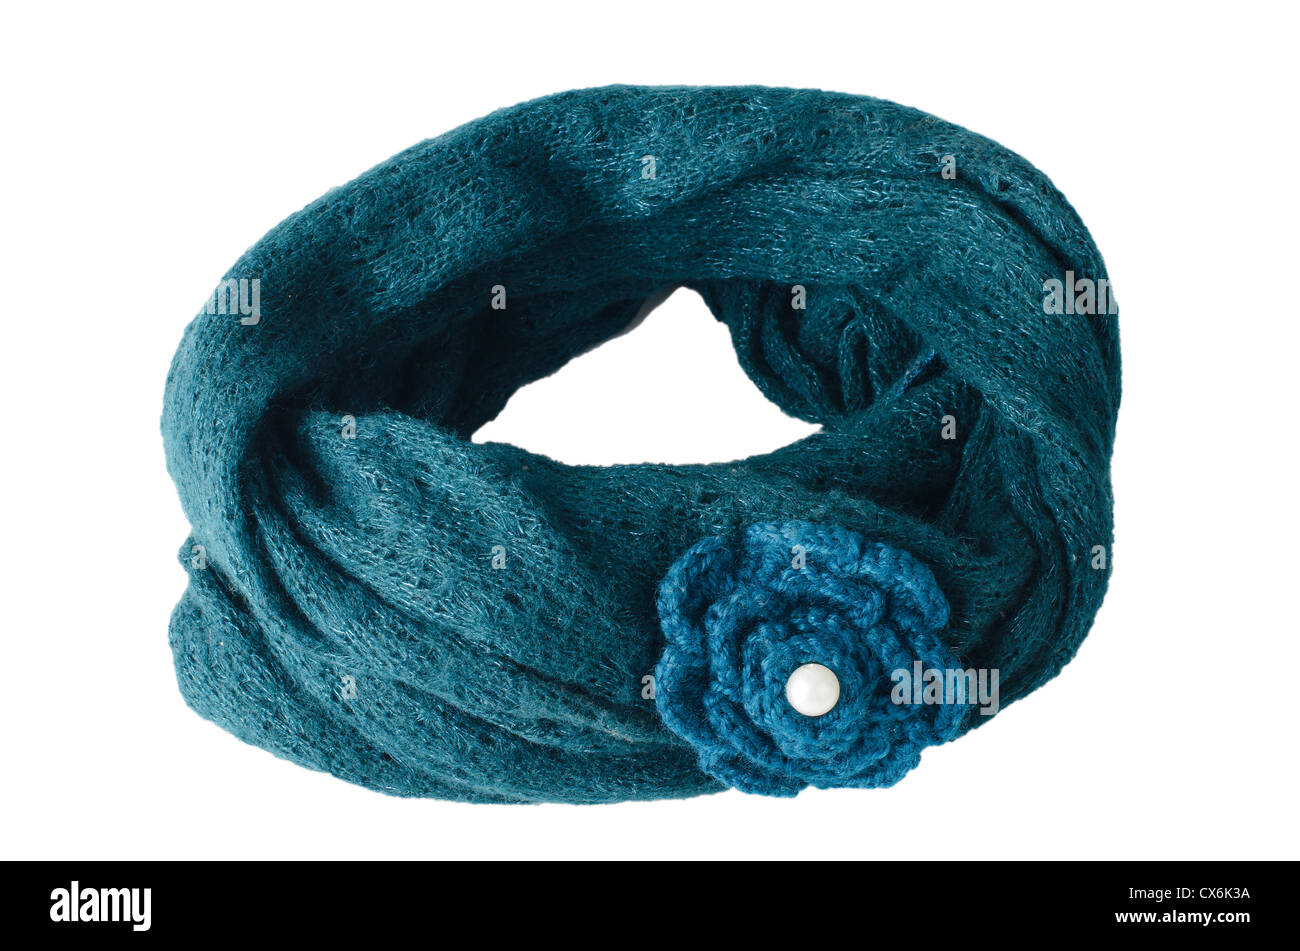 c16aaee4a3805 Warm scarf in blue isolated on white background Stock Photo ...